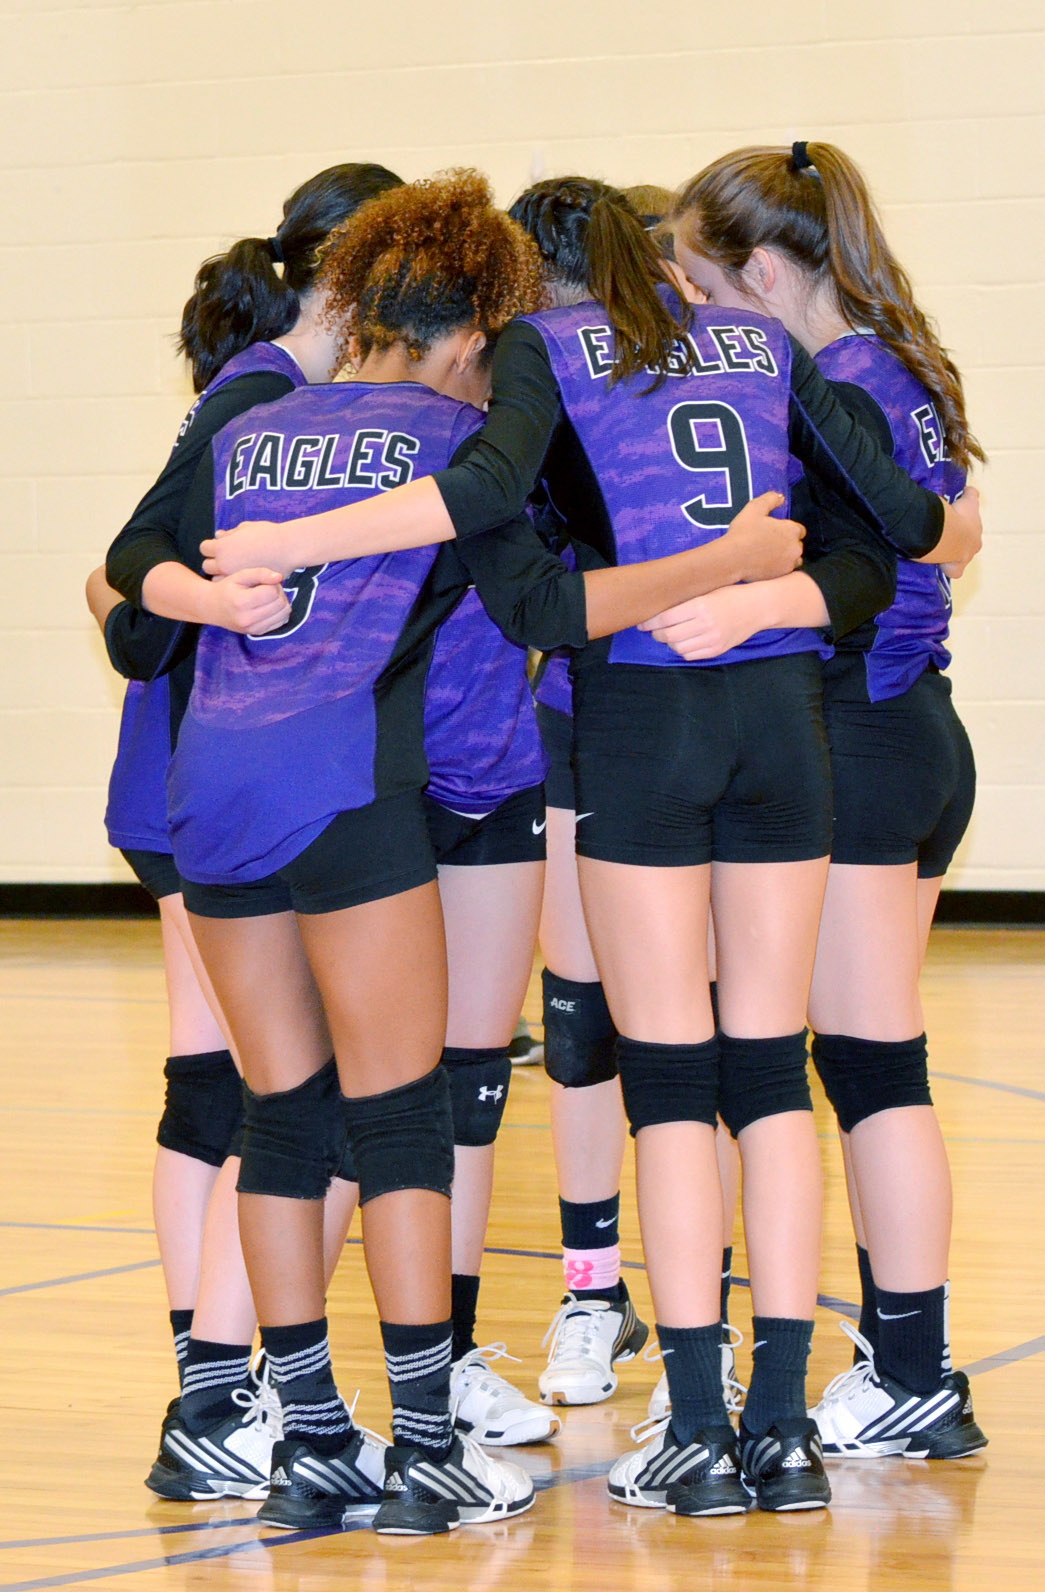 CMS volleyball players huddle before their match.